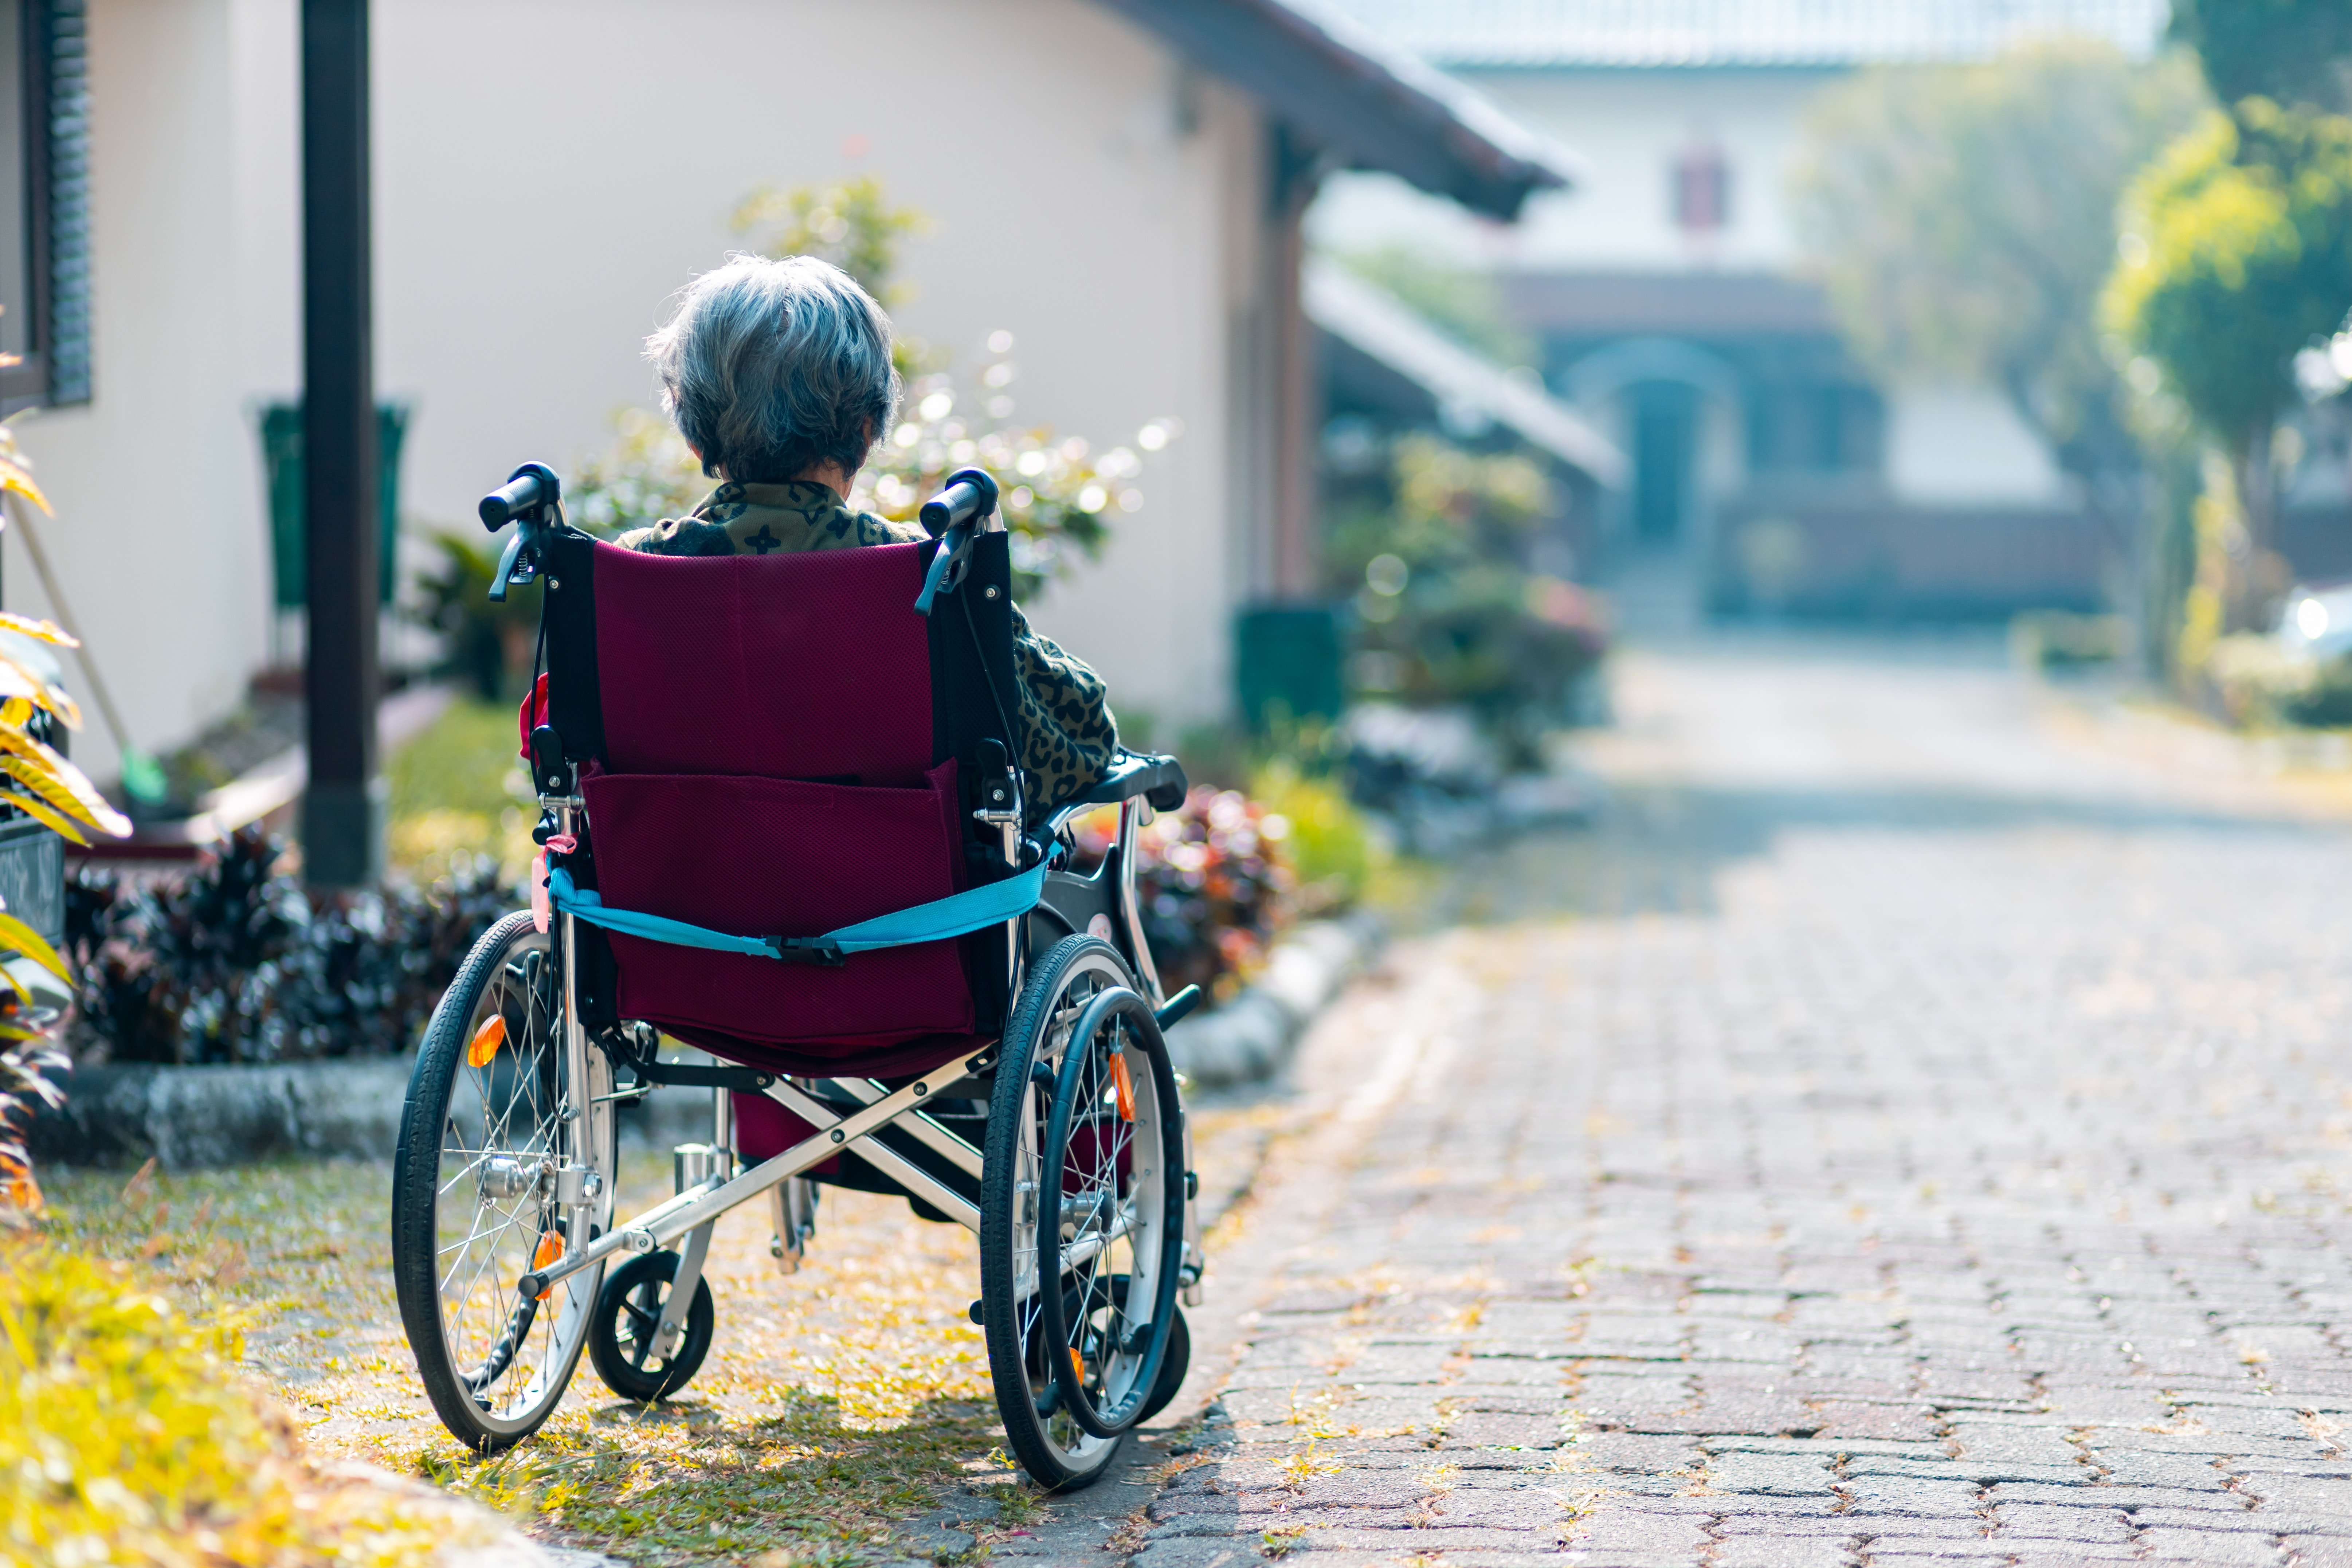 Mrs. Drummond was confined to a wheelchair after she suffered an injury   Photo: Unsplash